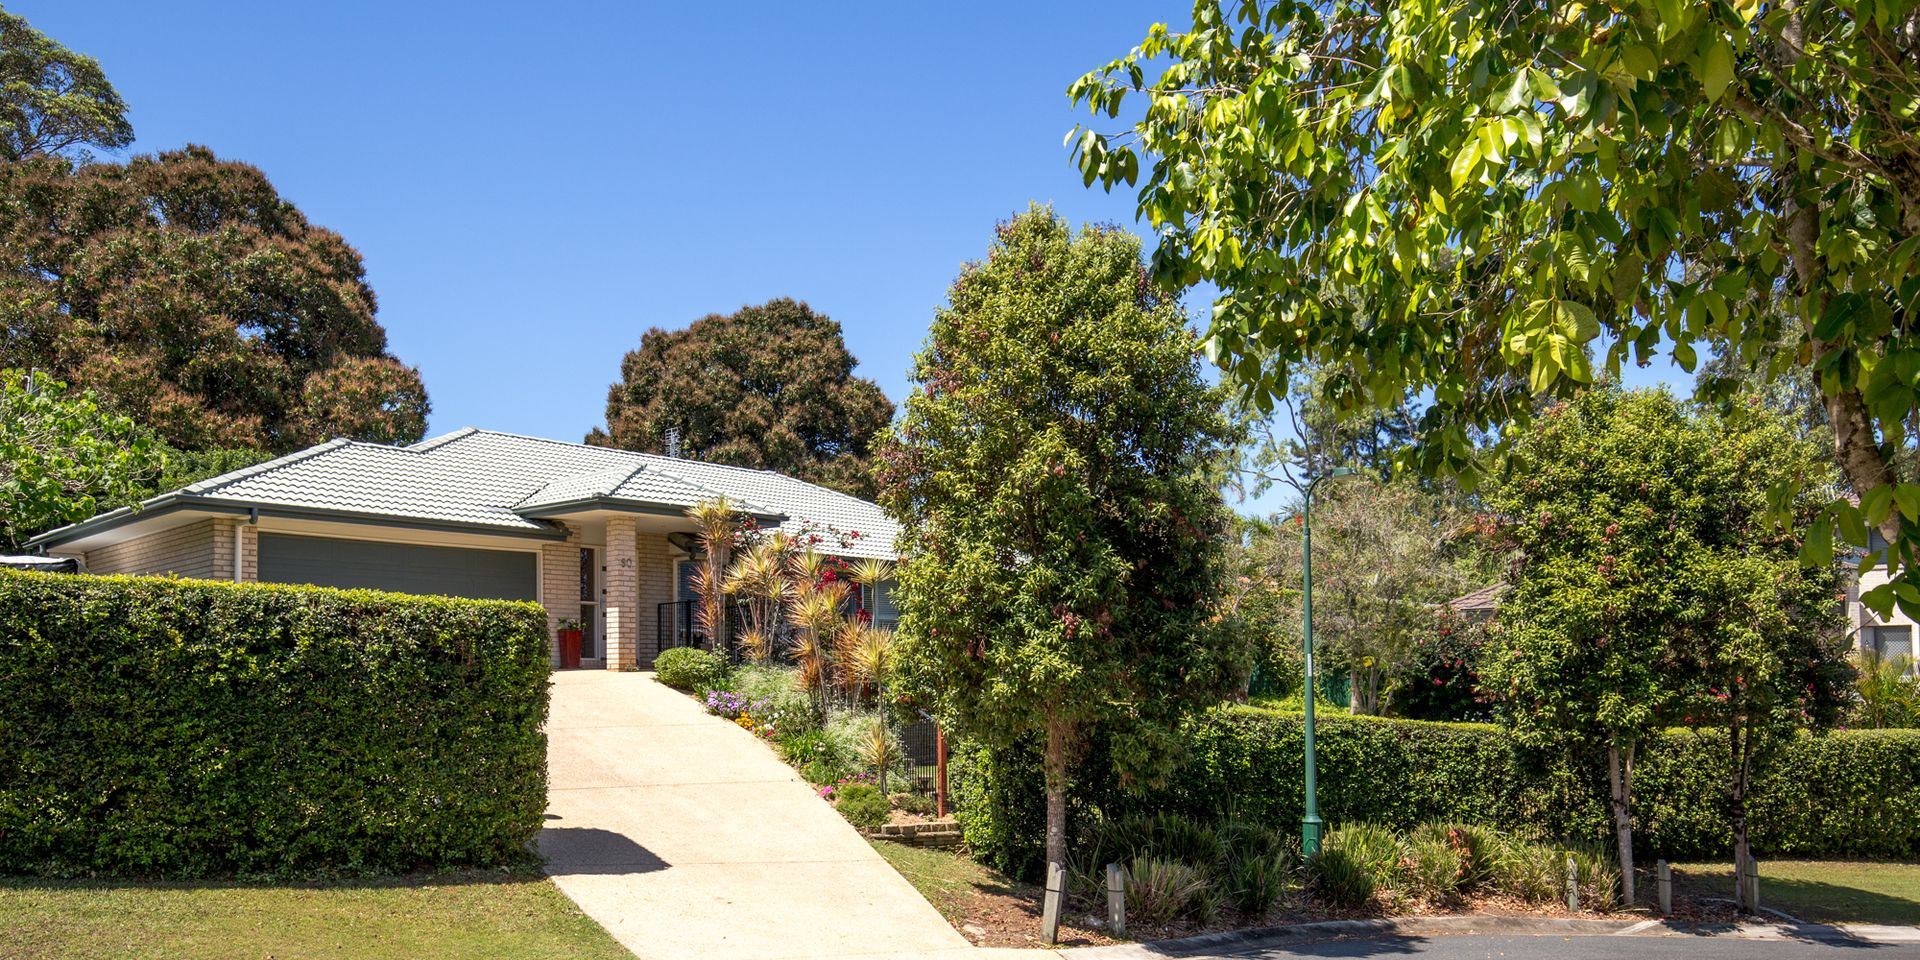 90 Countryview Street, Street, Woombye QLD 4559, Image 0